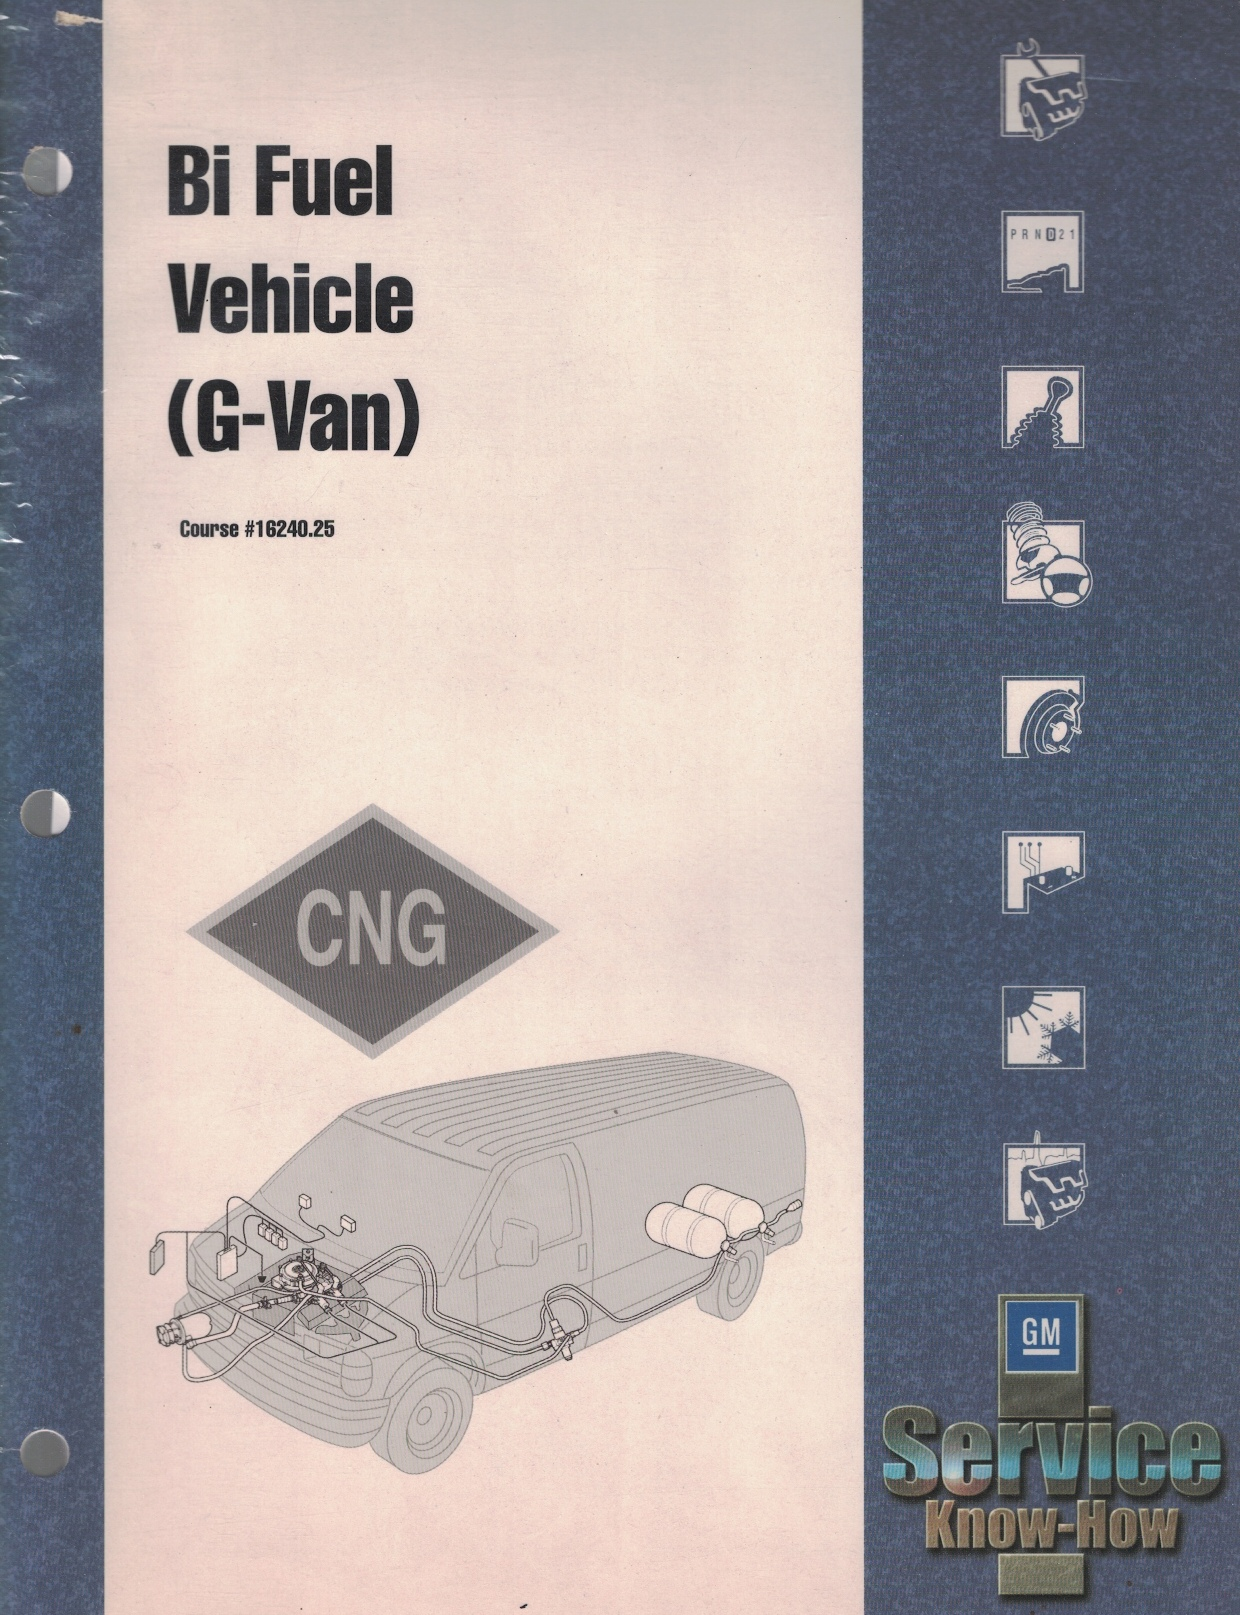 Image for 2001 G-Van Bi-Fuel Vehicle (CNG). Course #16240.25 [GM Service Know-How training manual]